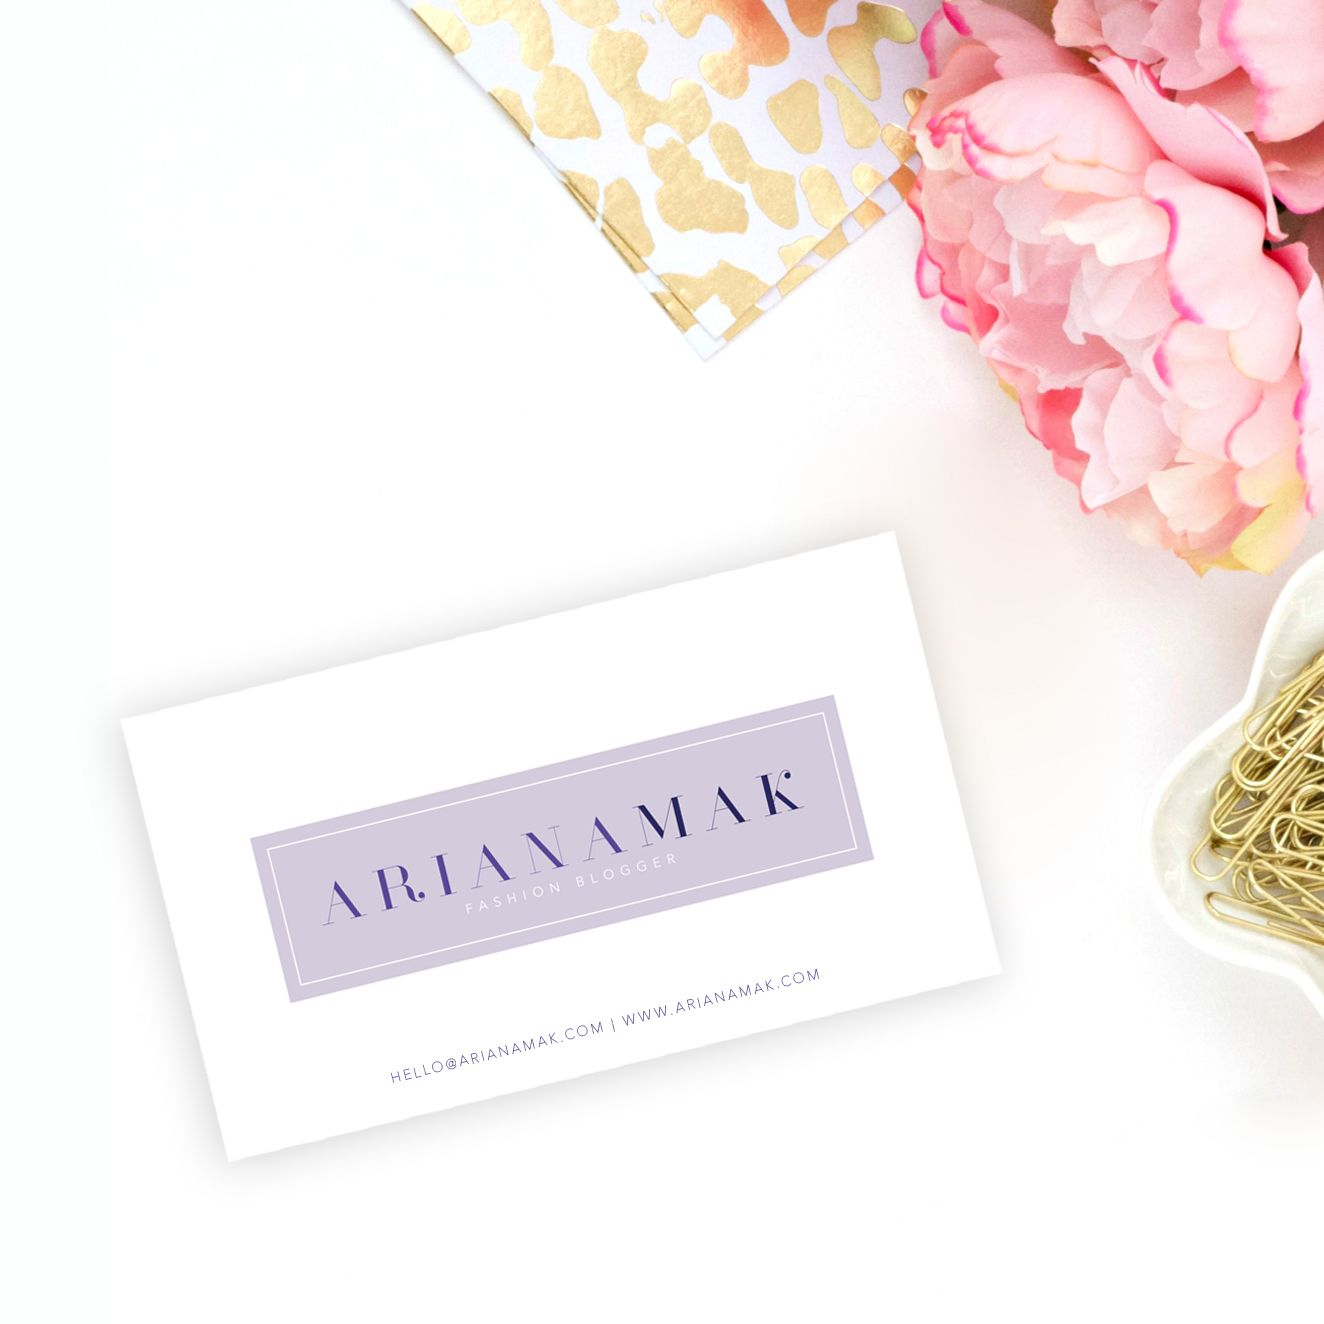 NEW LOGO AND BUSINESS CARD ADDED TO THE COLLECTION | Business cards ...